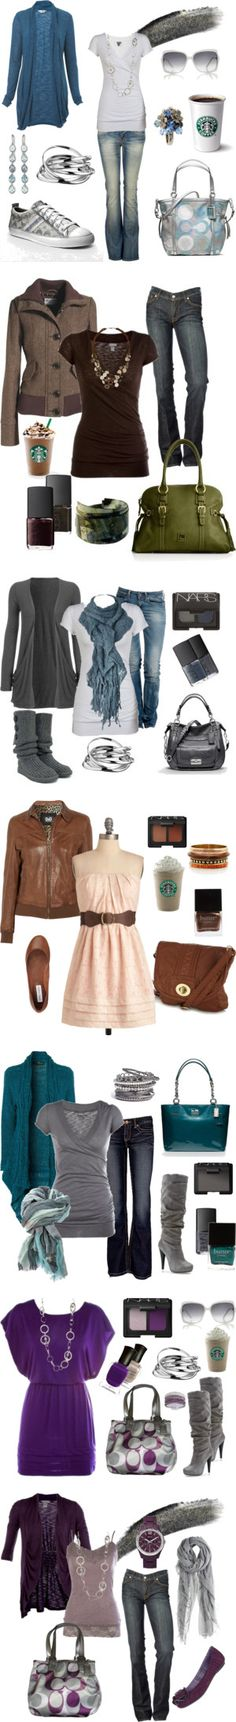 Created By ChelseaWate on Polyvore